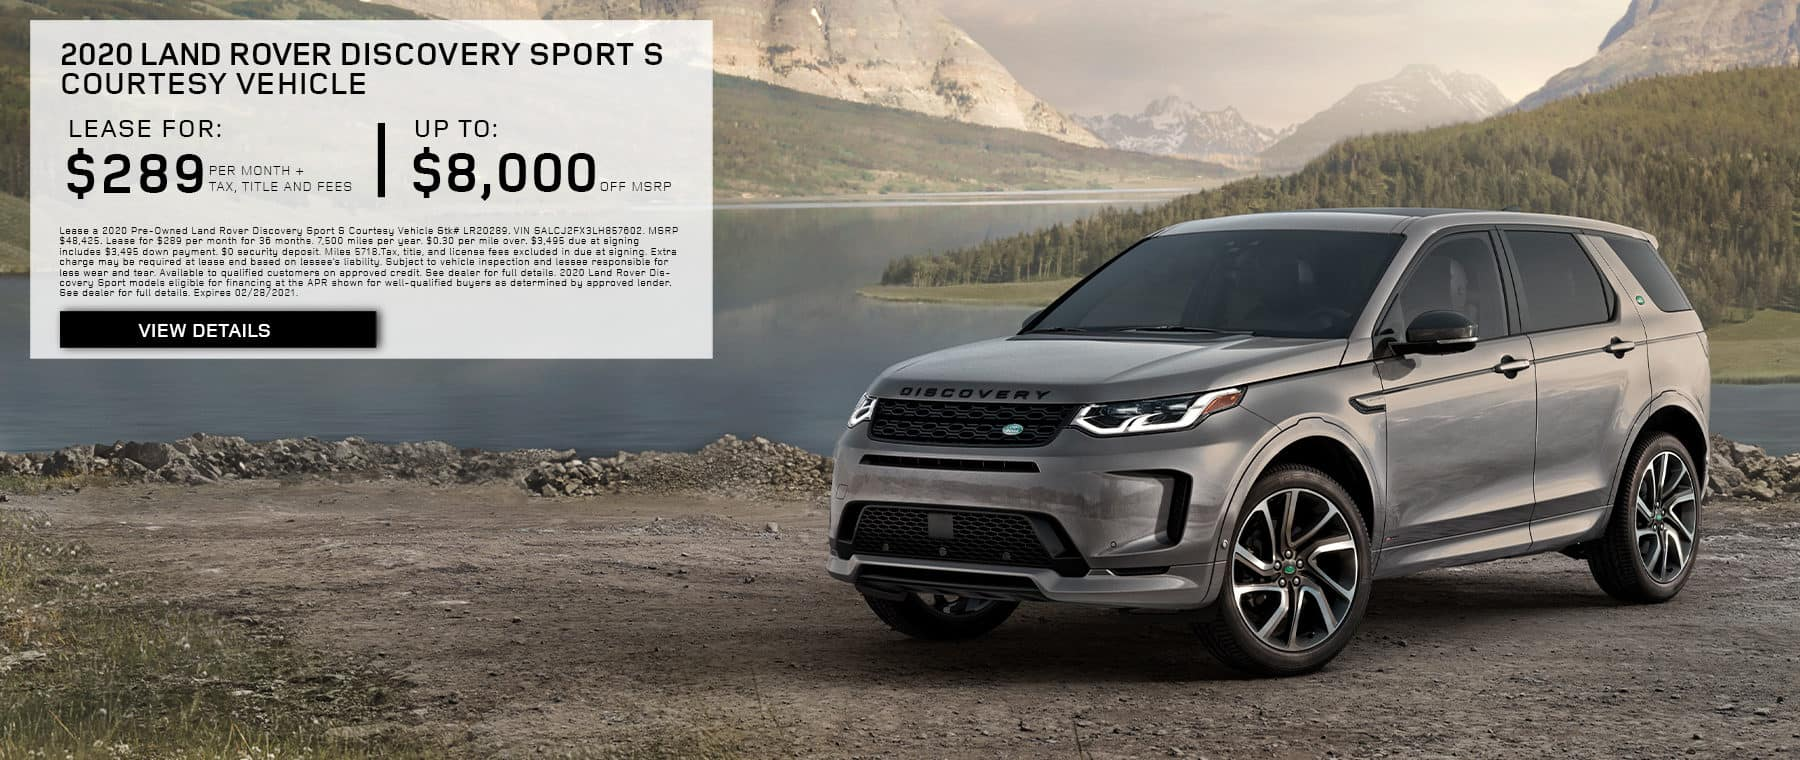 LAND ROVER COURTESY DUAL OFFER FEBRUARY LEASE BANNER 3